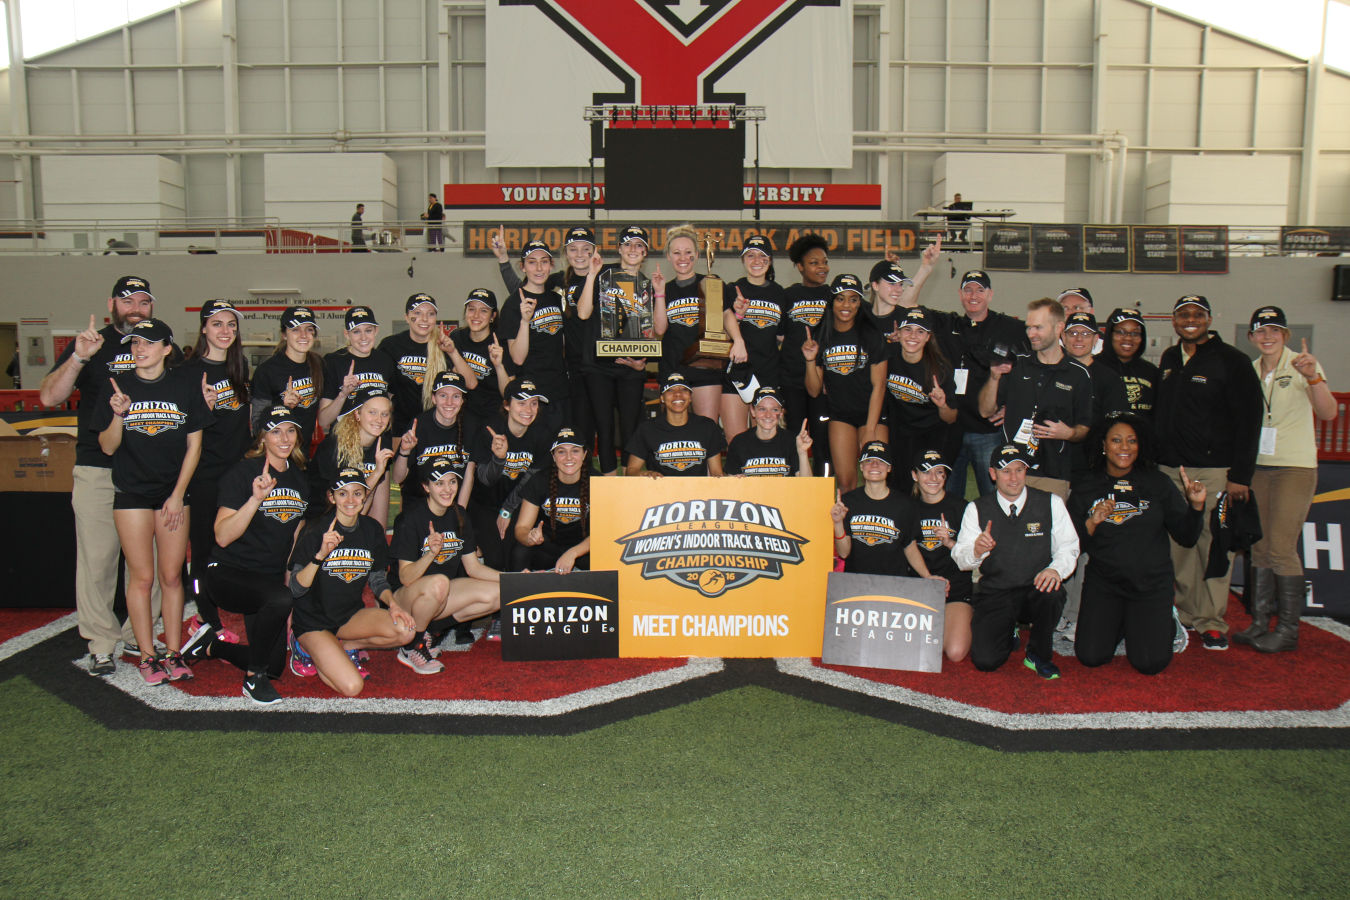 The women's track and field team brought home its first Horizon League indoor championship on Sunday, Feb.28.